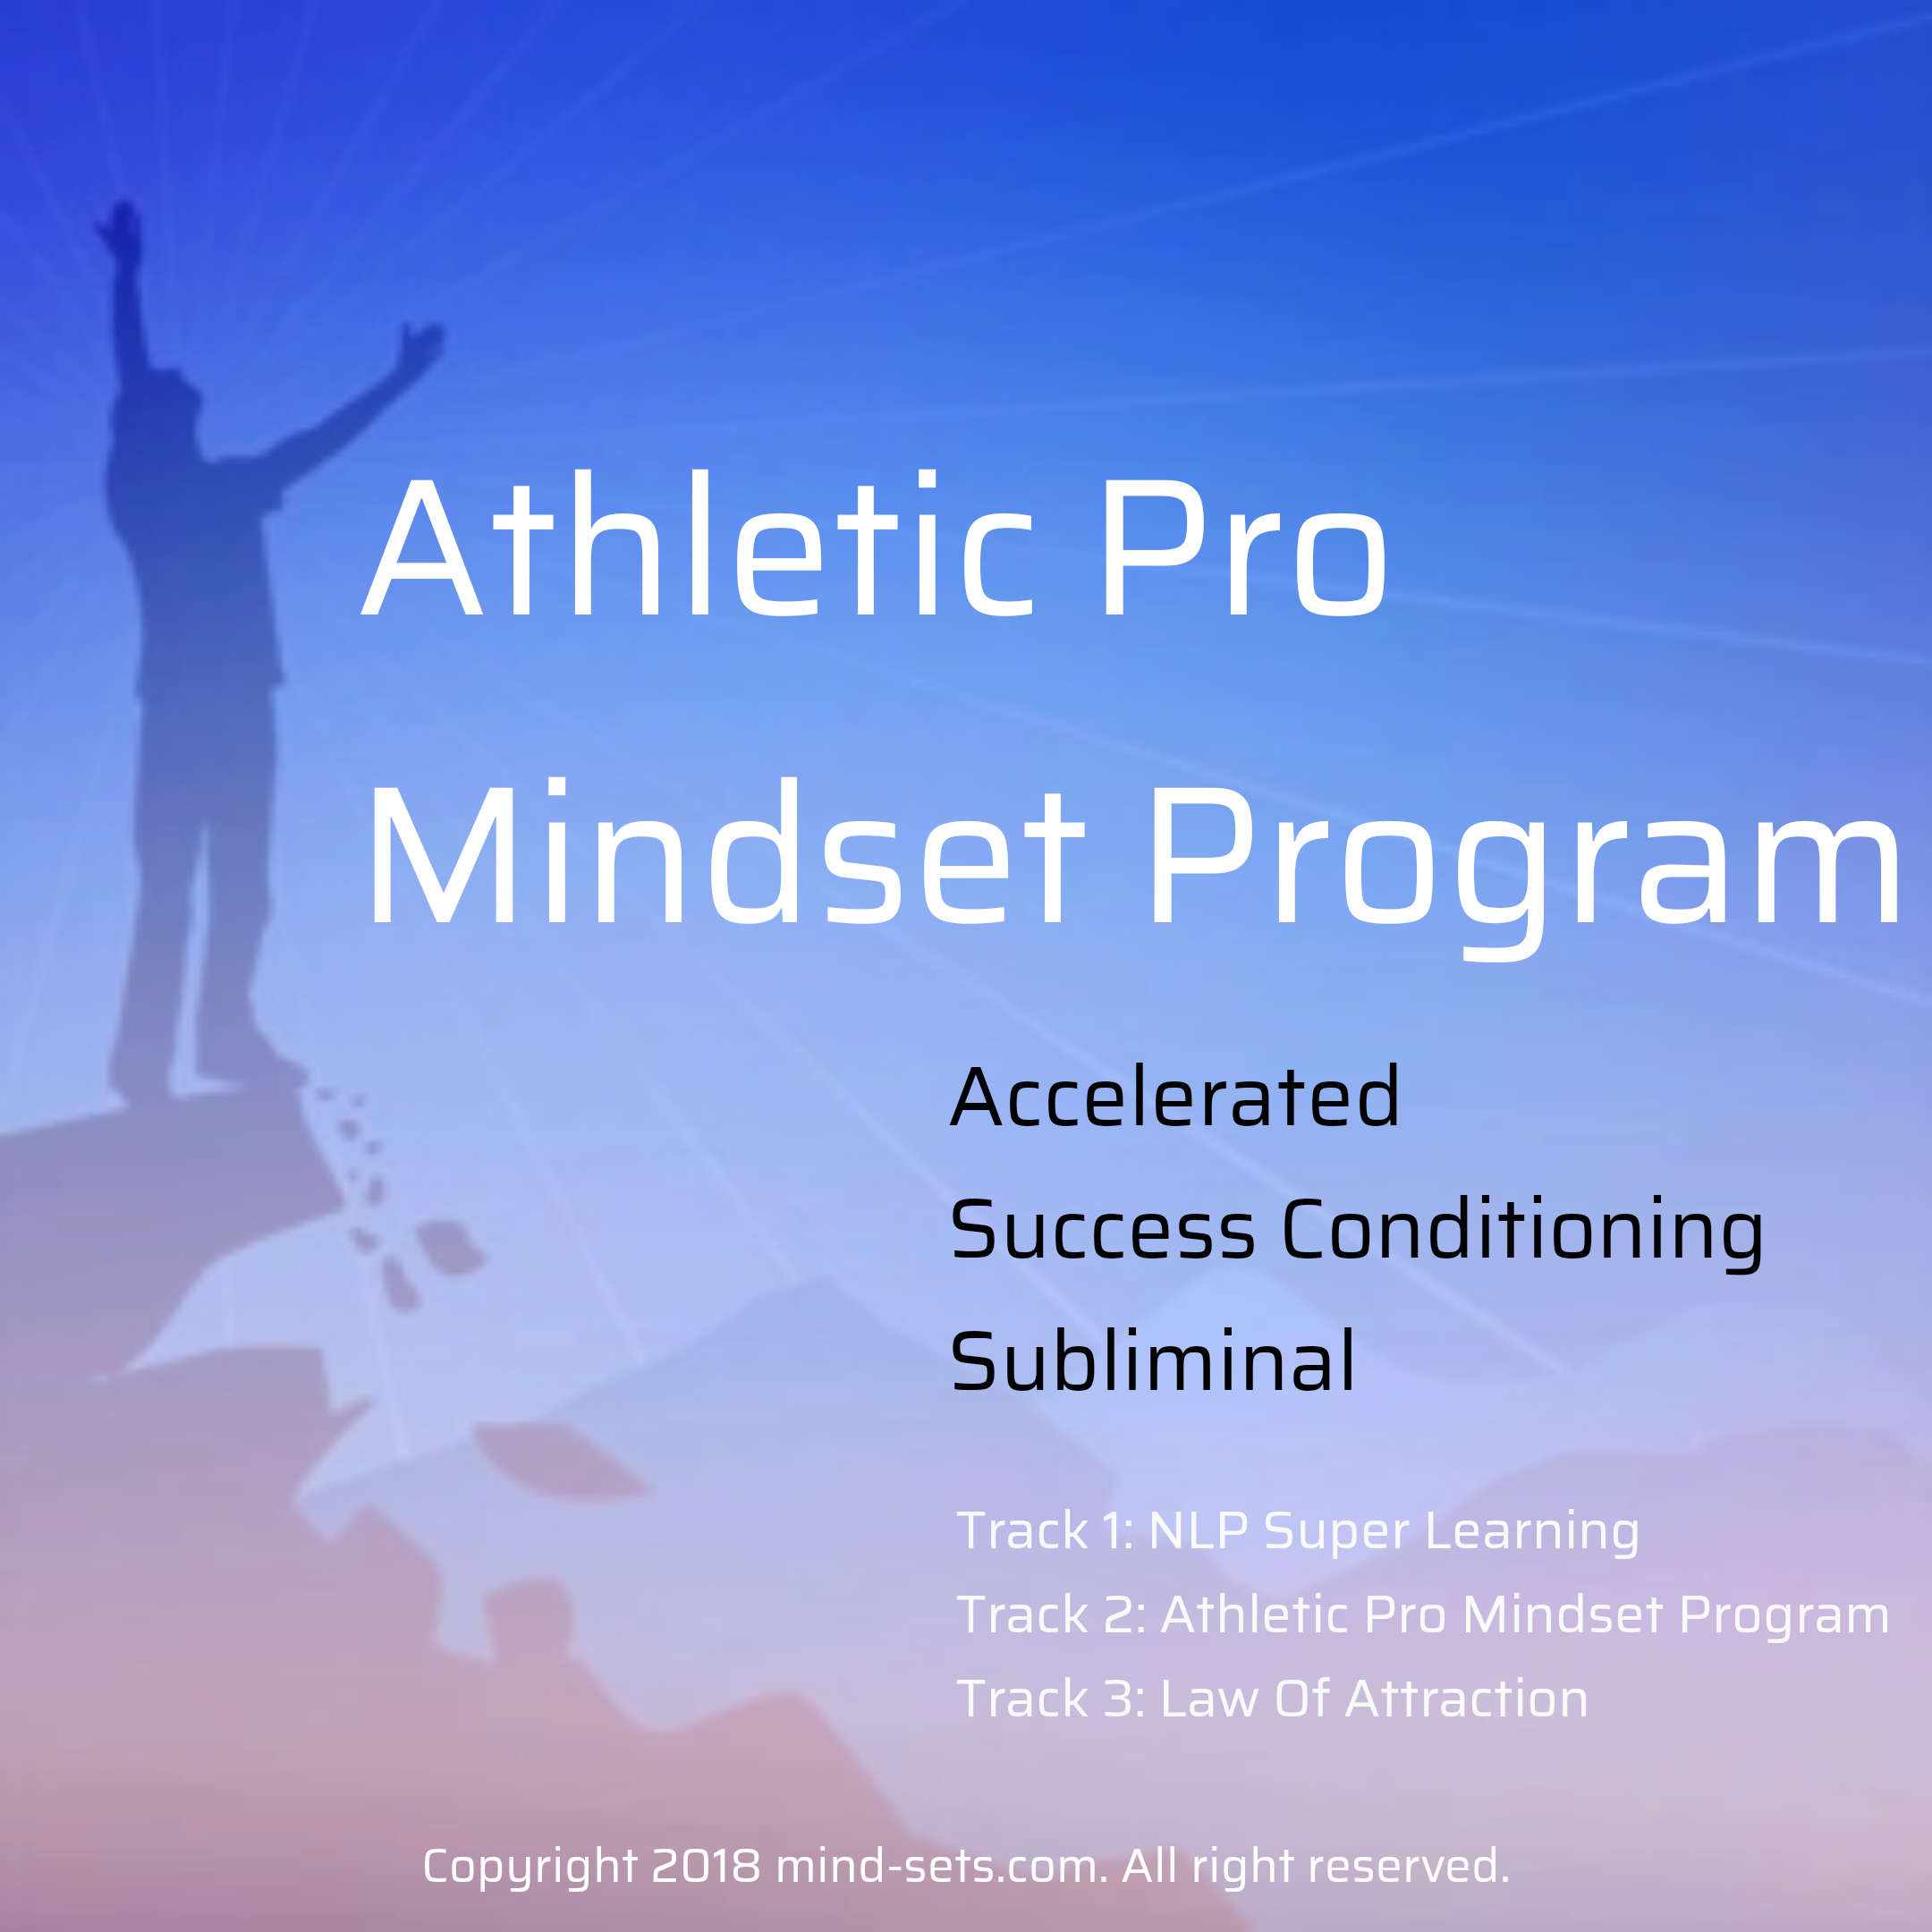 Athletic Pro Mindset Program